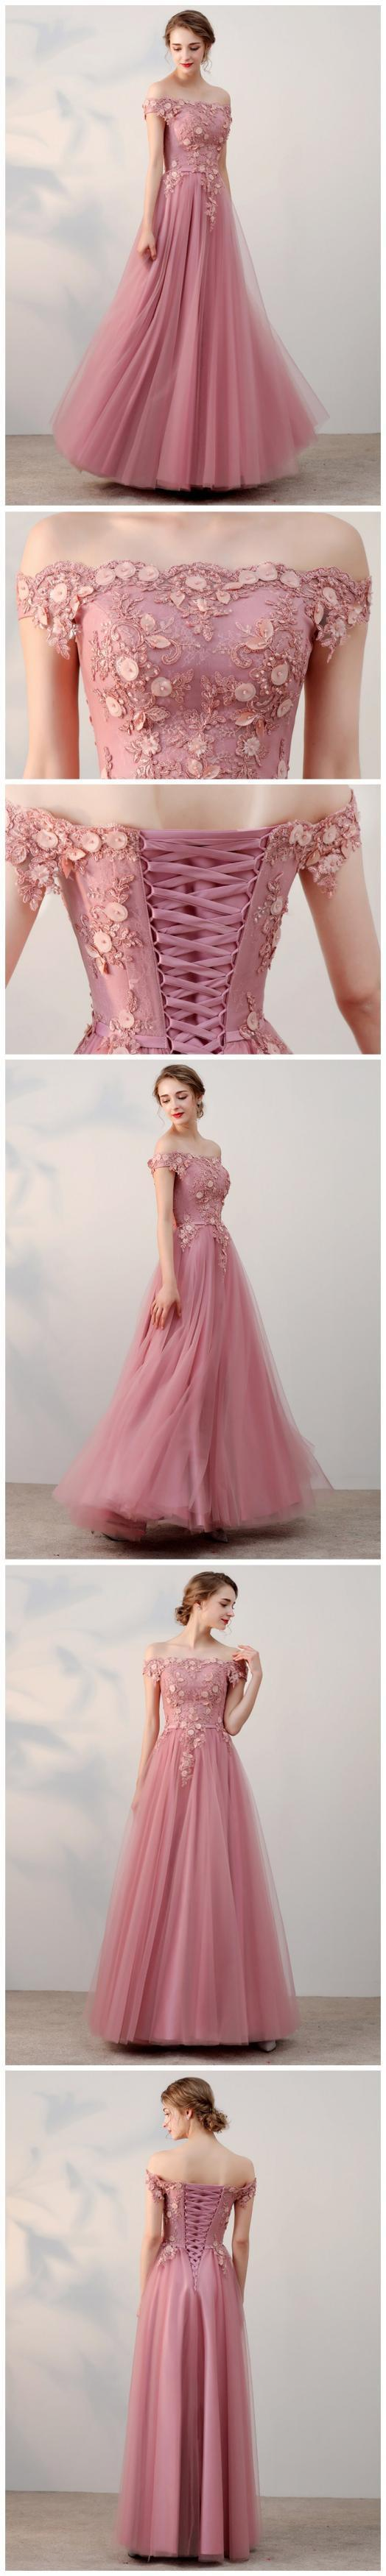 Chic A-line Off-the-shoulder Pink Applique Tulle Modest Long Prom Dress Evening